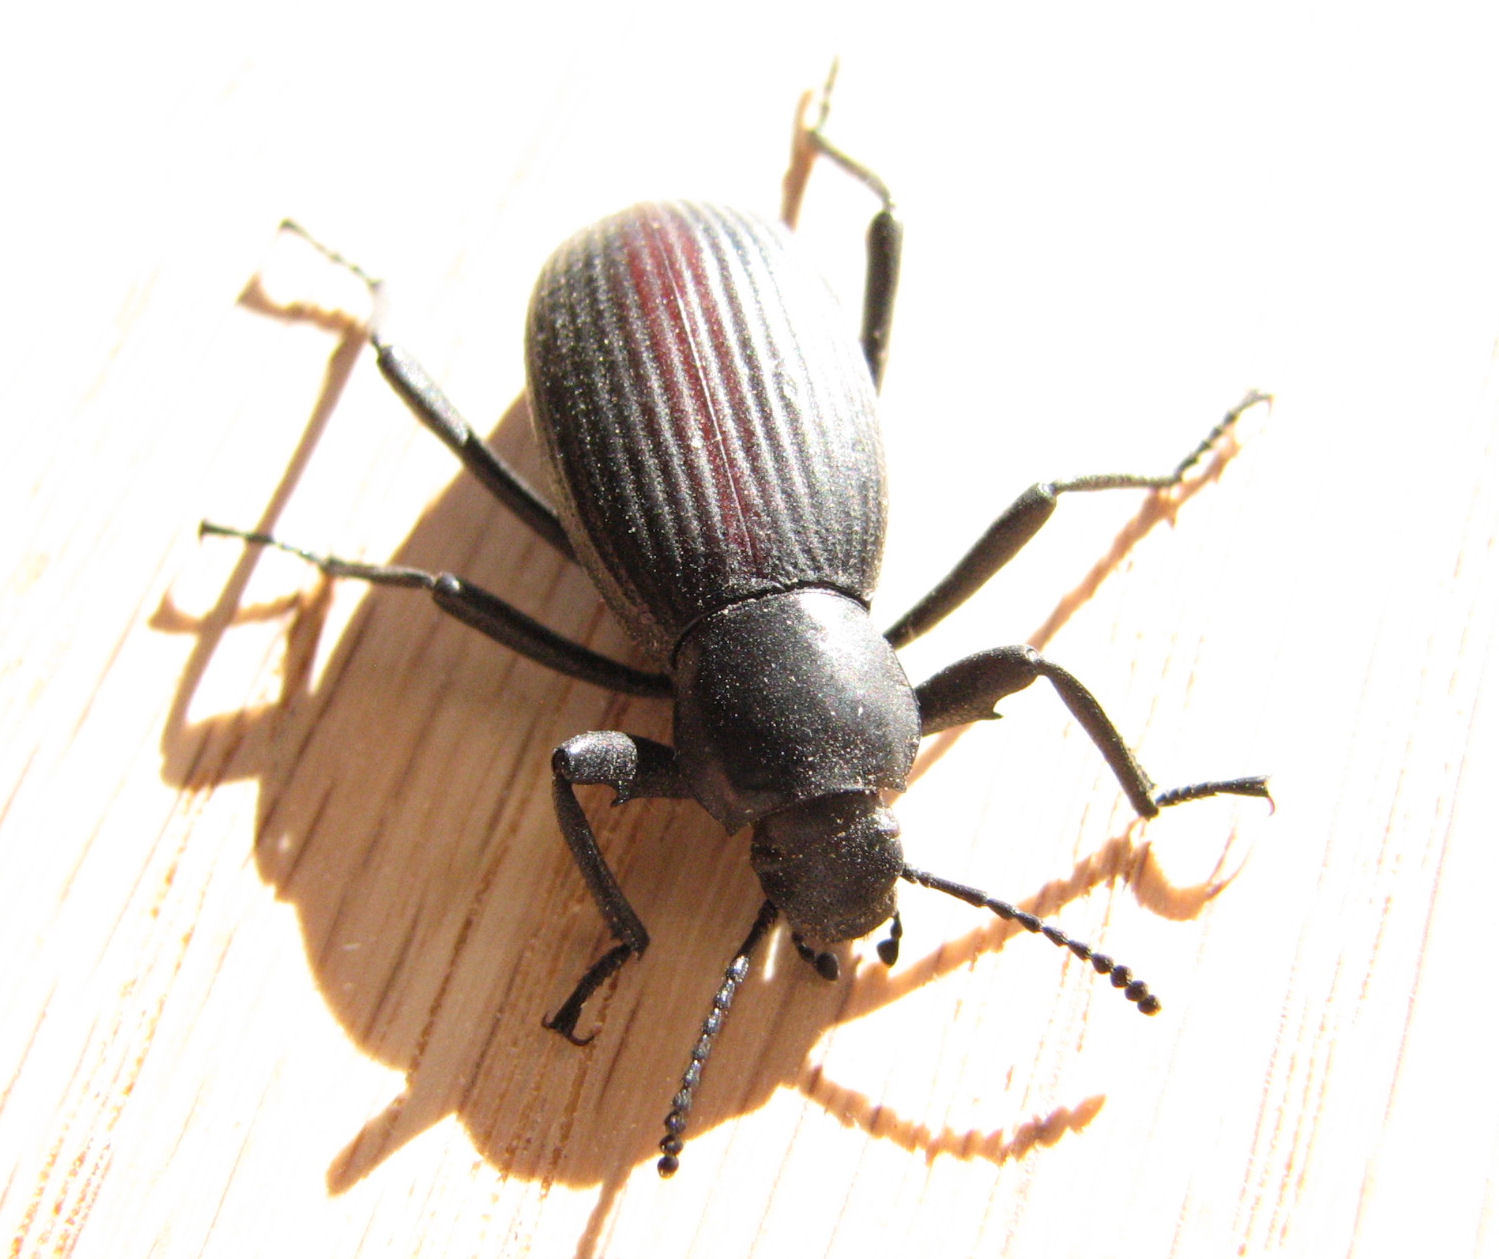 This Is Another Darkling Beetle And Ears To Be The Same Species As Photo Above It Was Crawling On My Garage Floor 4 November 2017